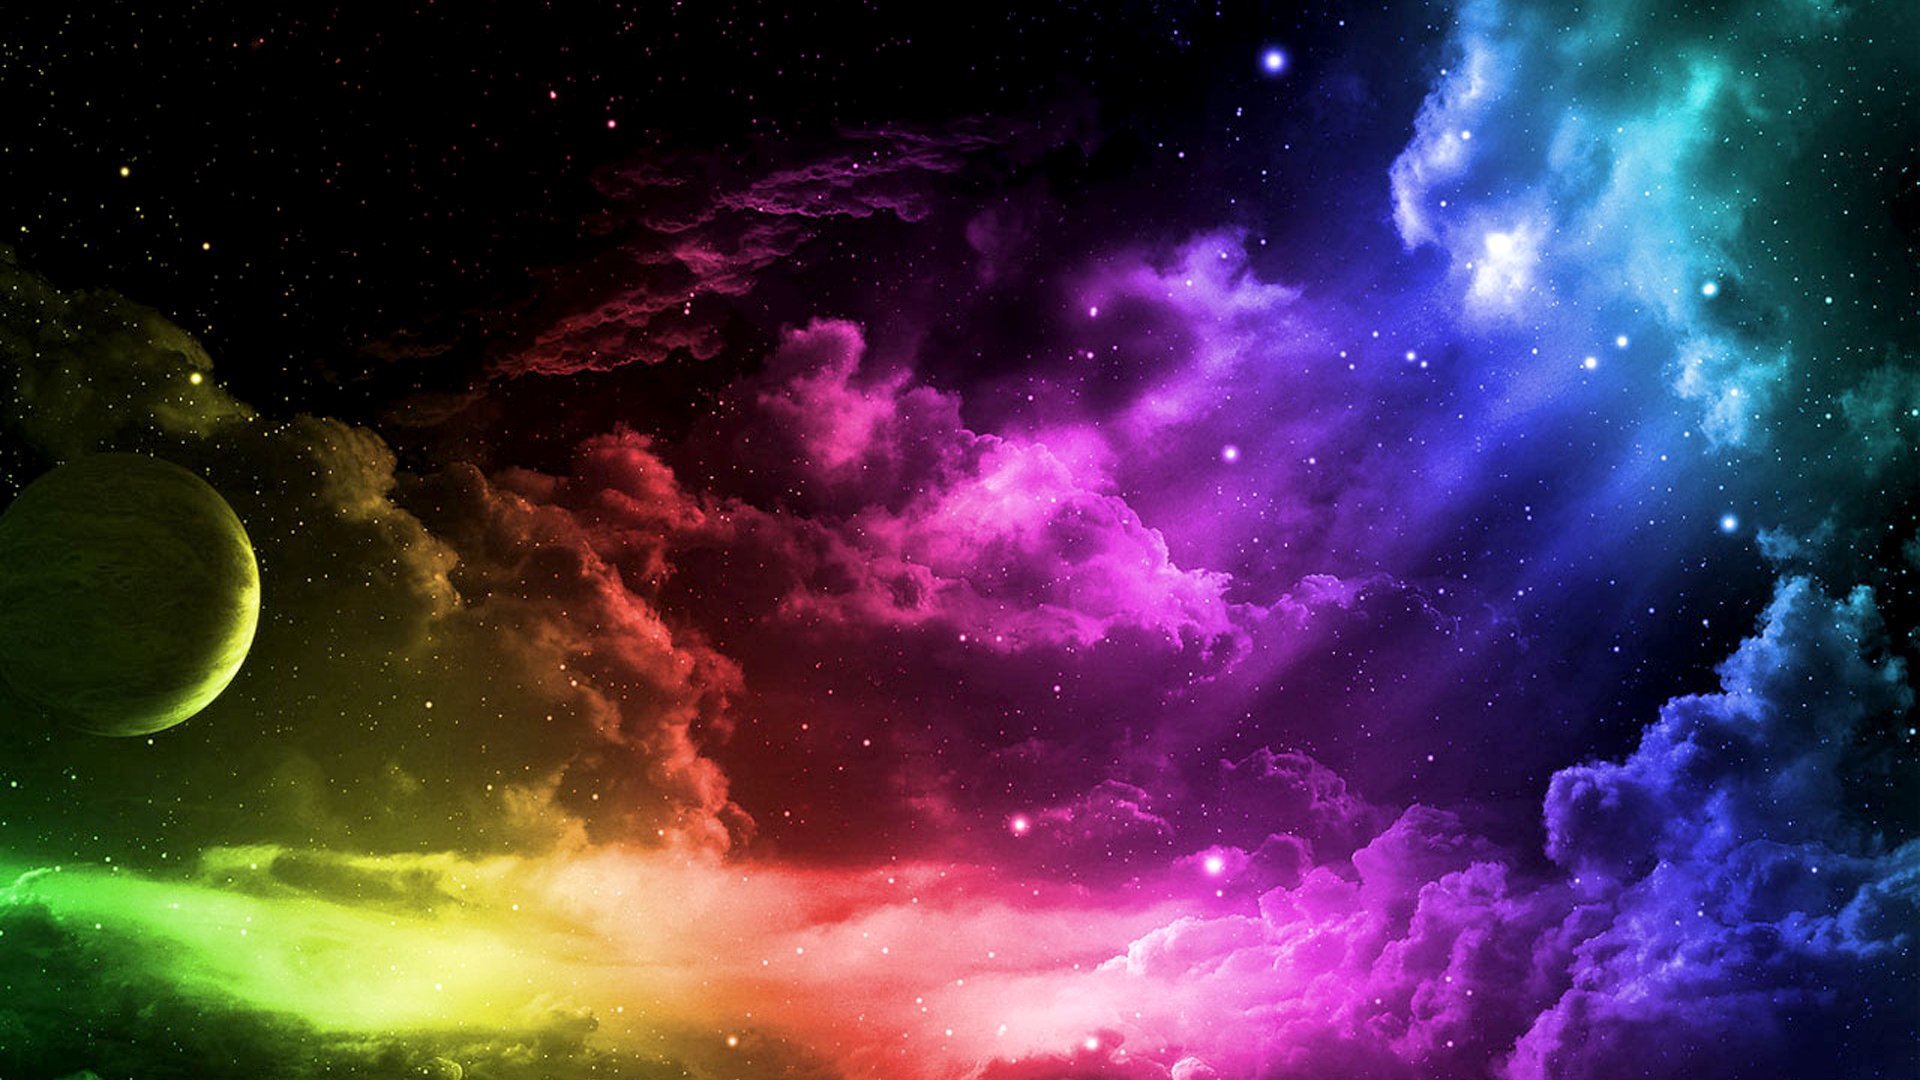 Get free colorful backgrounds for your desktop and give it a more